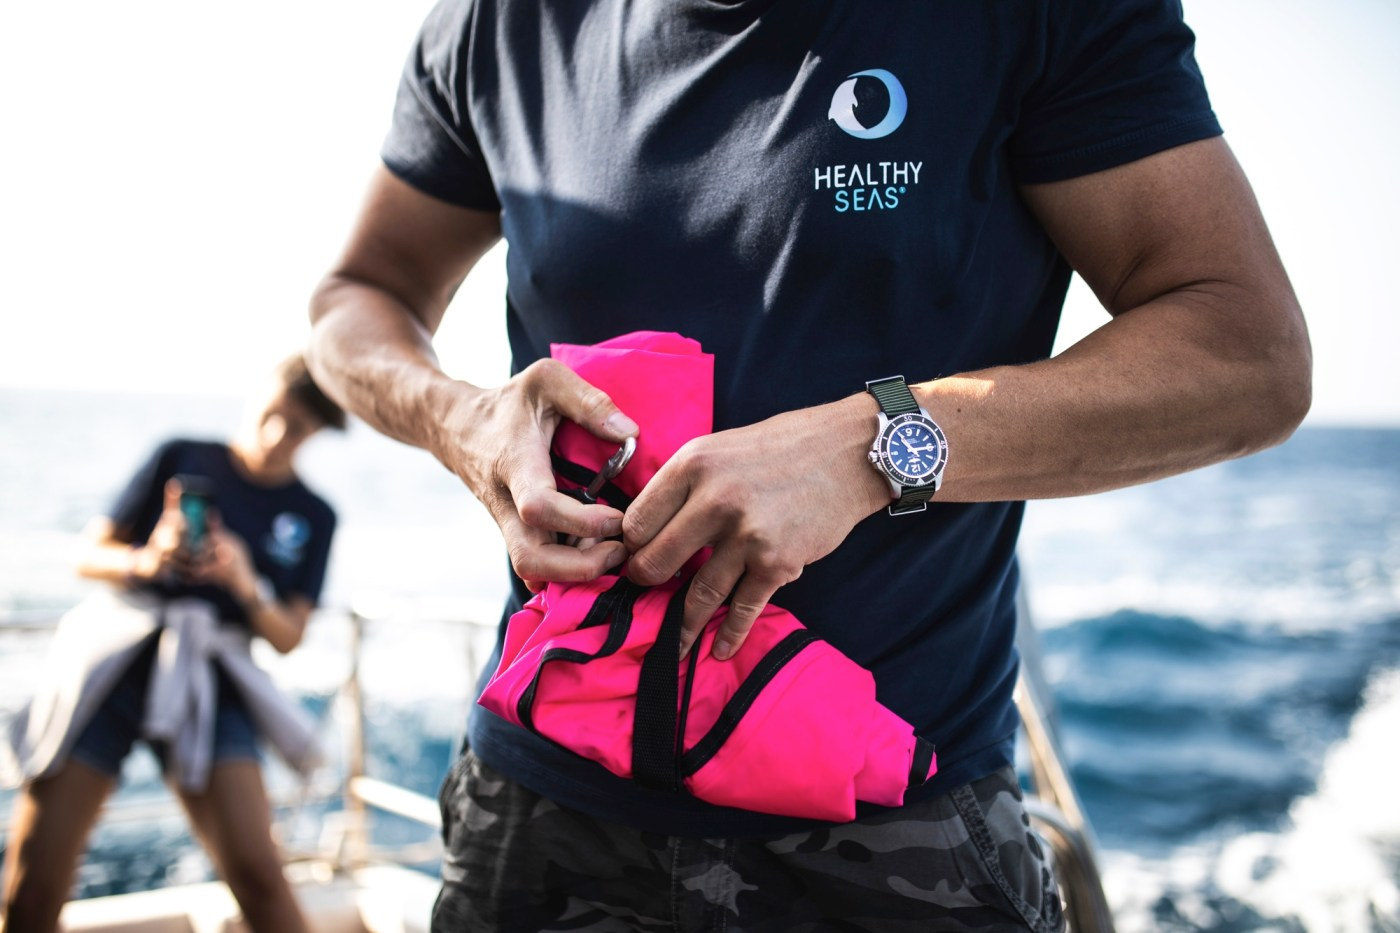 Healthy Seas Diver Preparing for a mission with his Superocean Outerknown